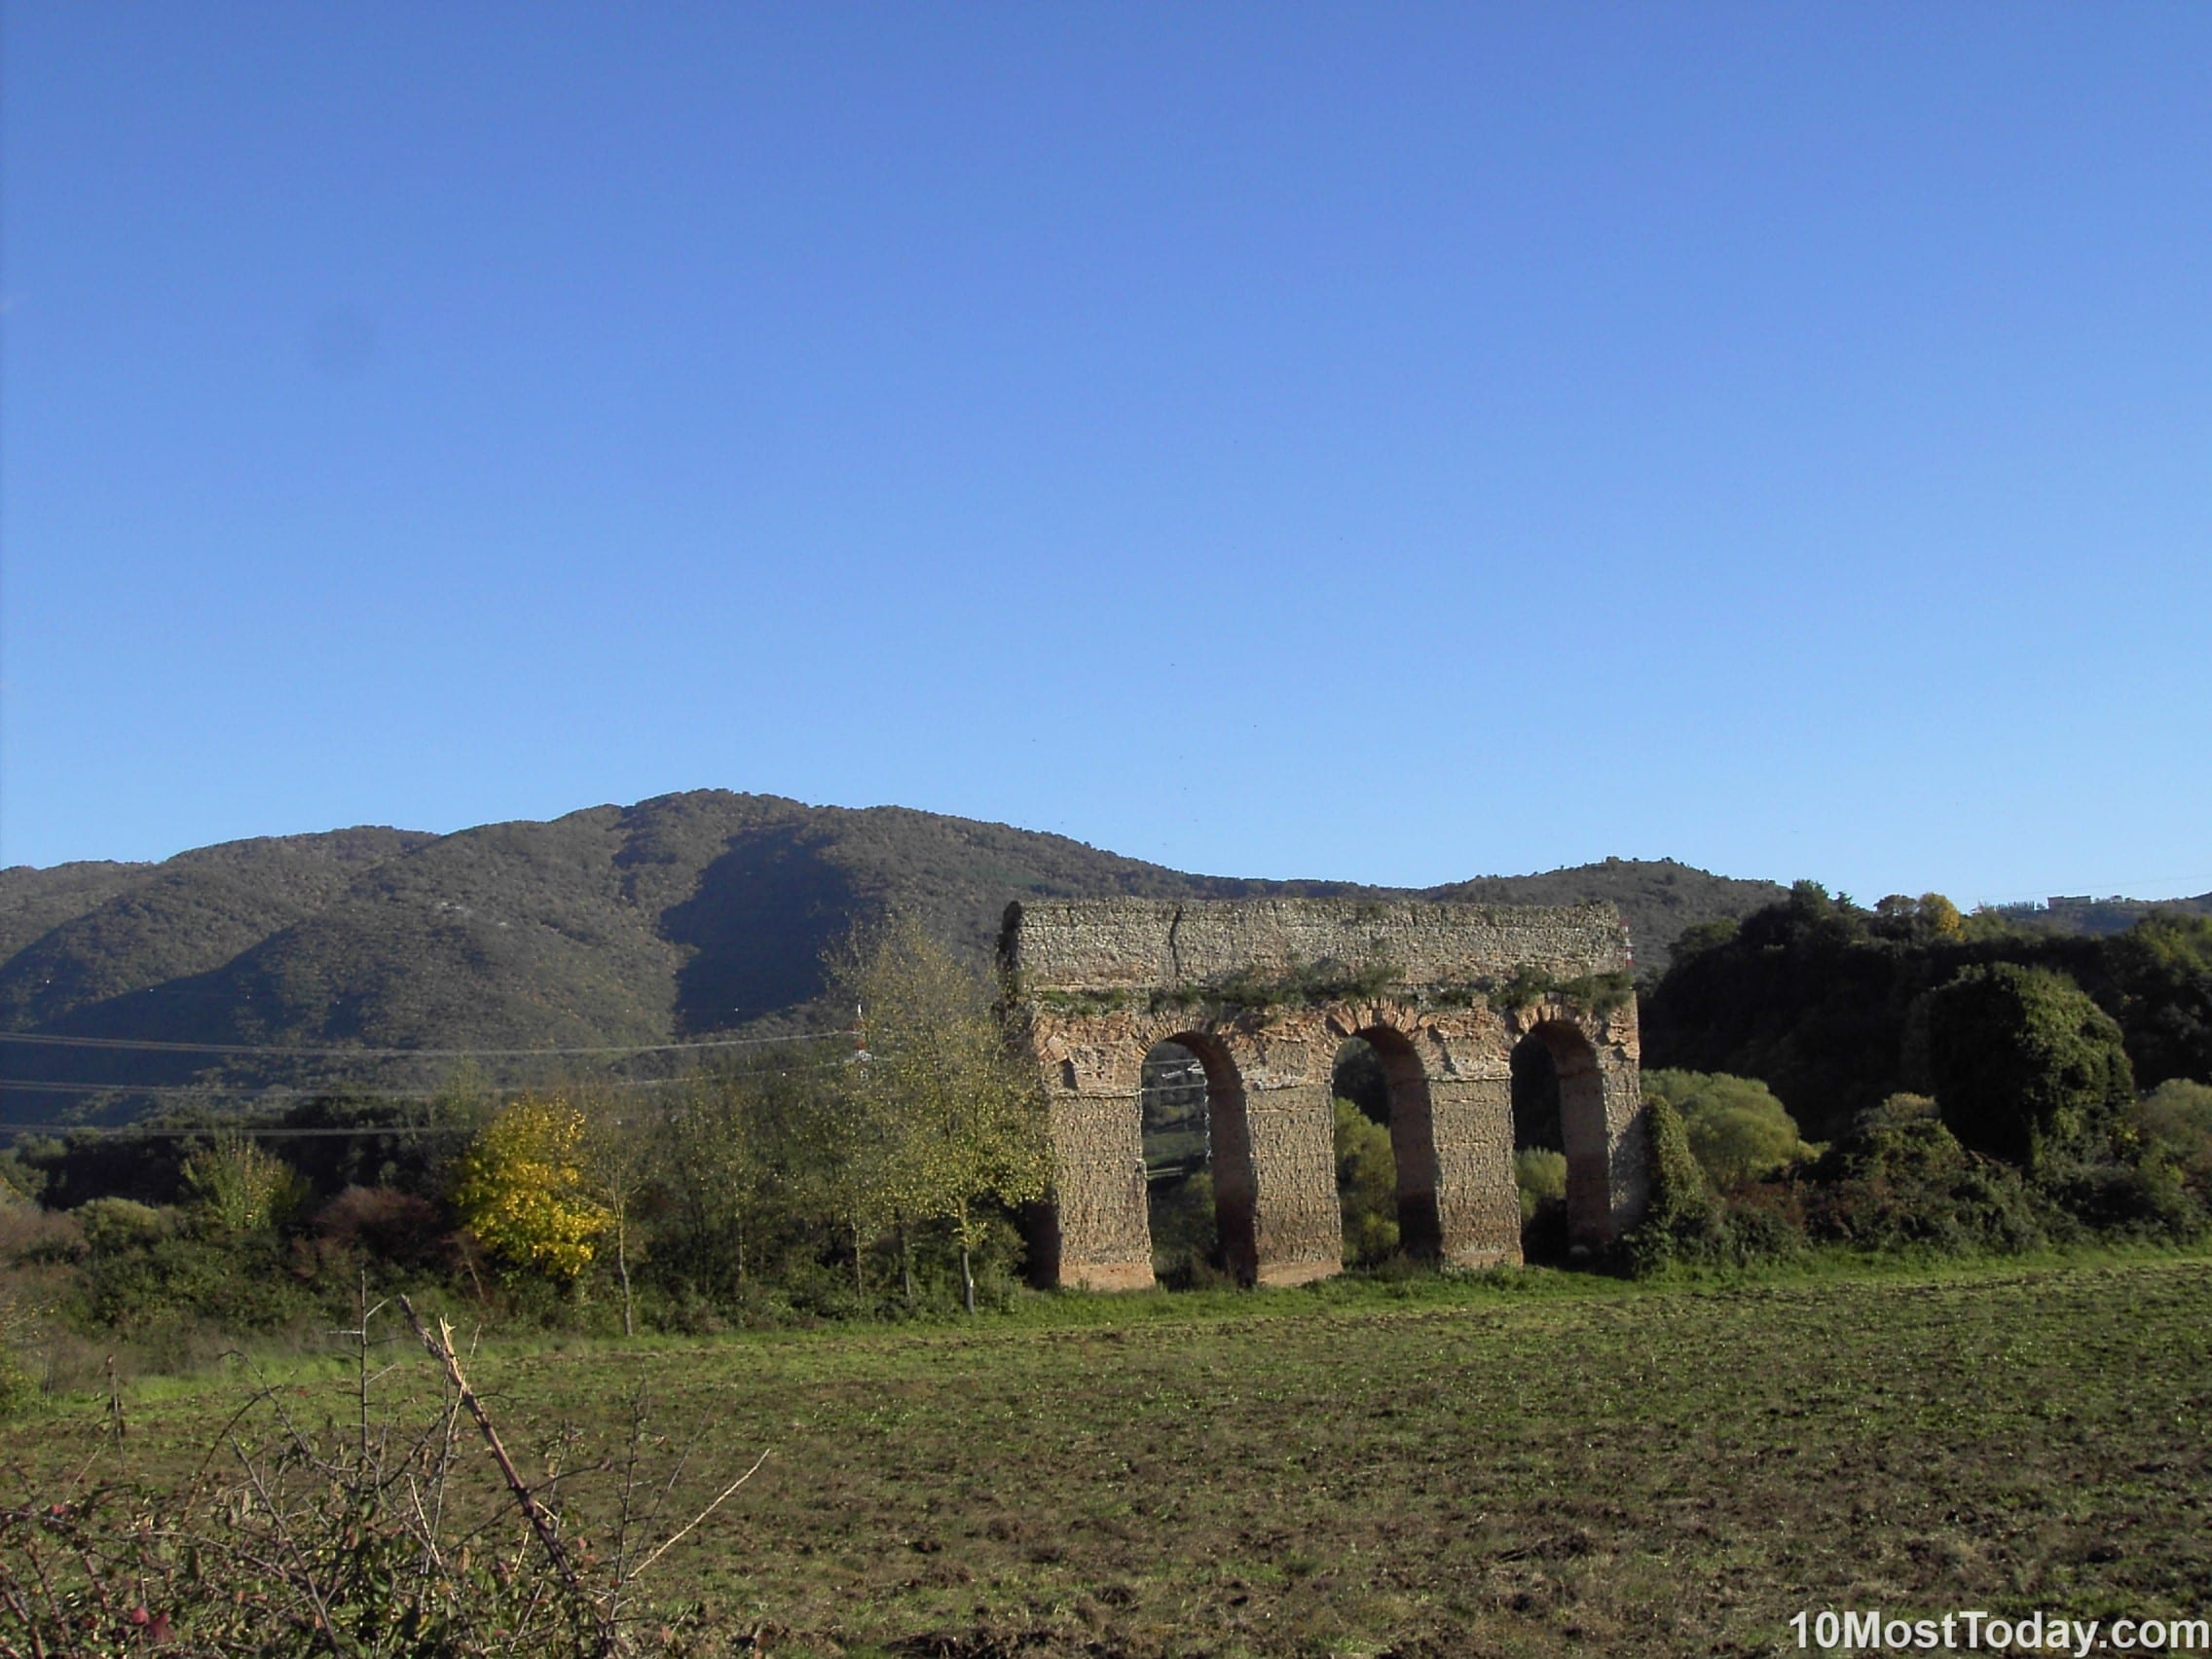 Most Beautiful Roman Aqueducts: Aqua Marcia